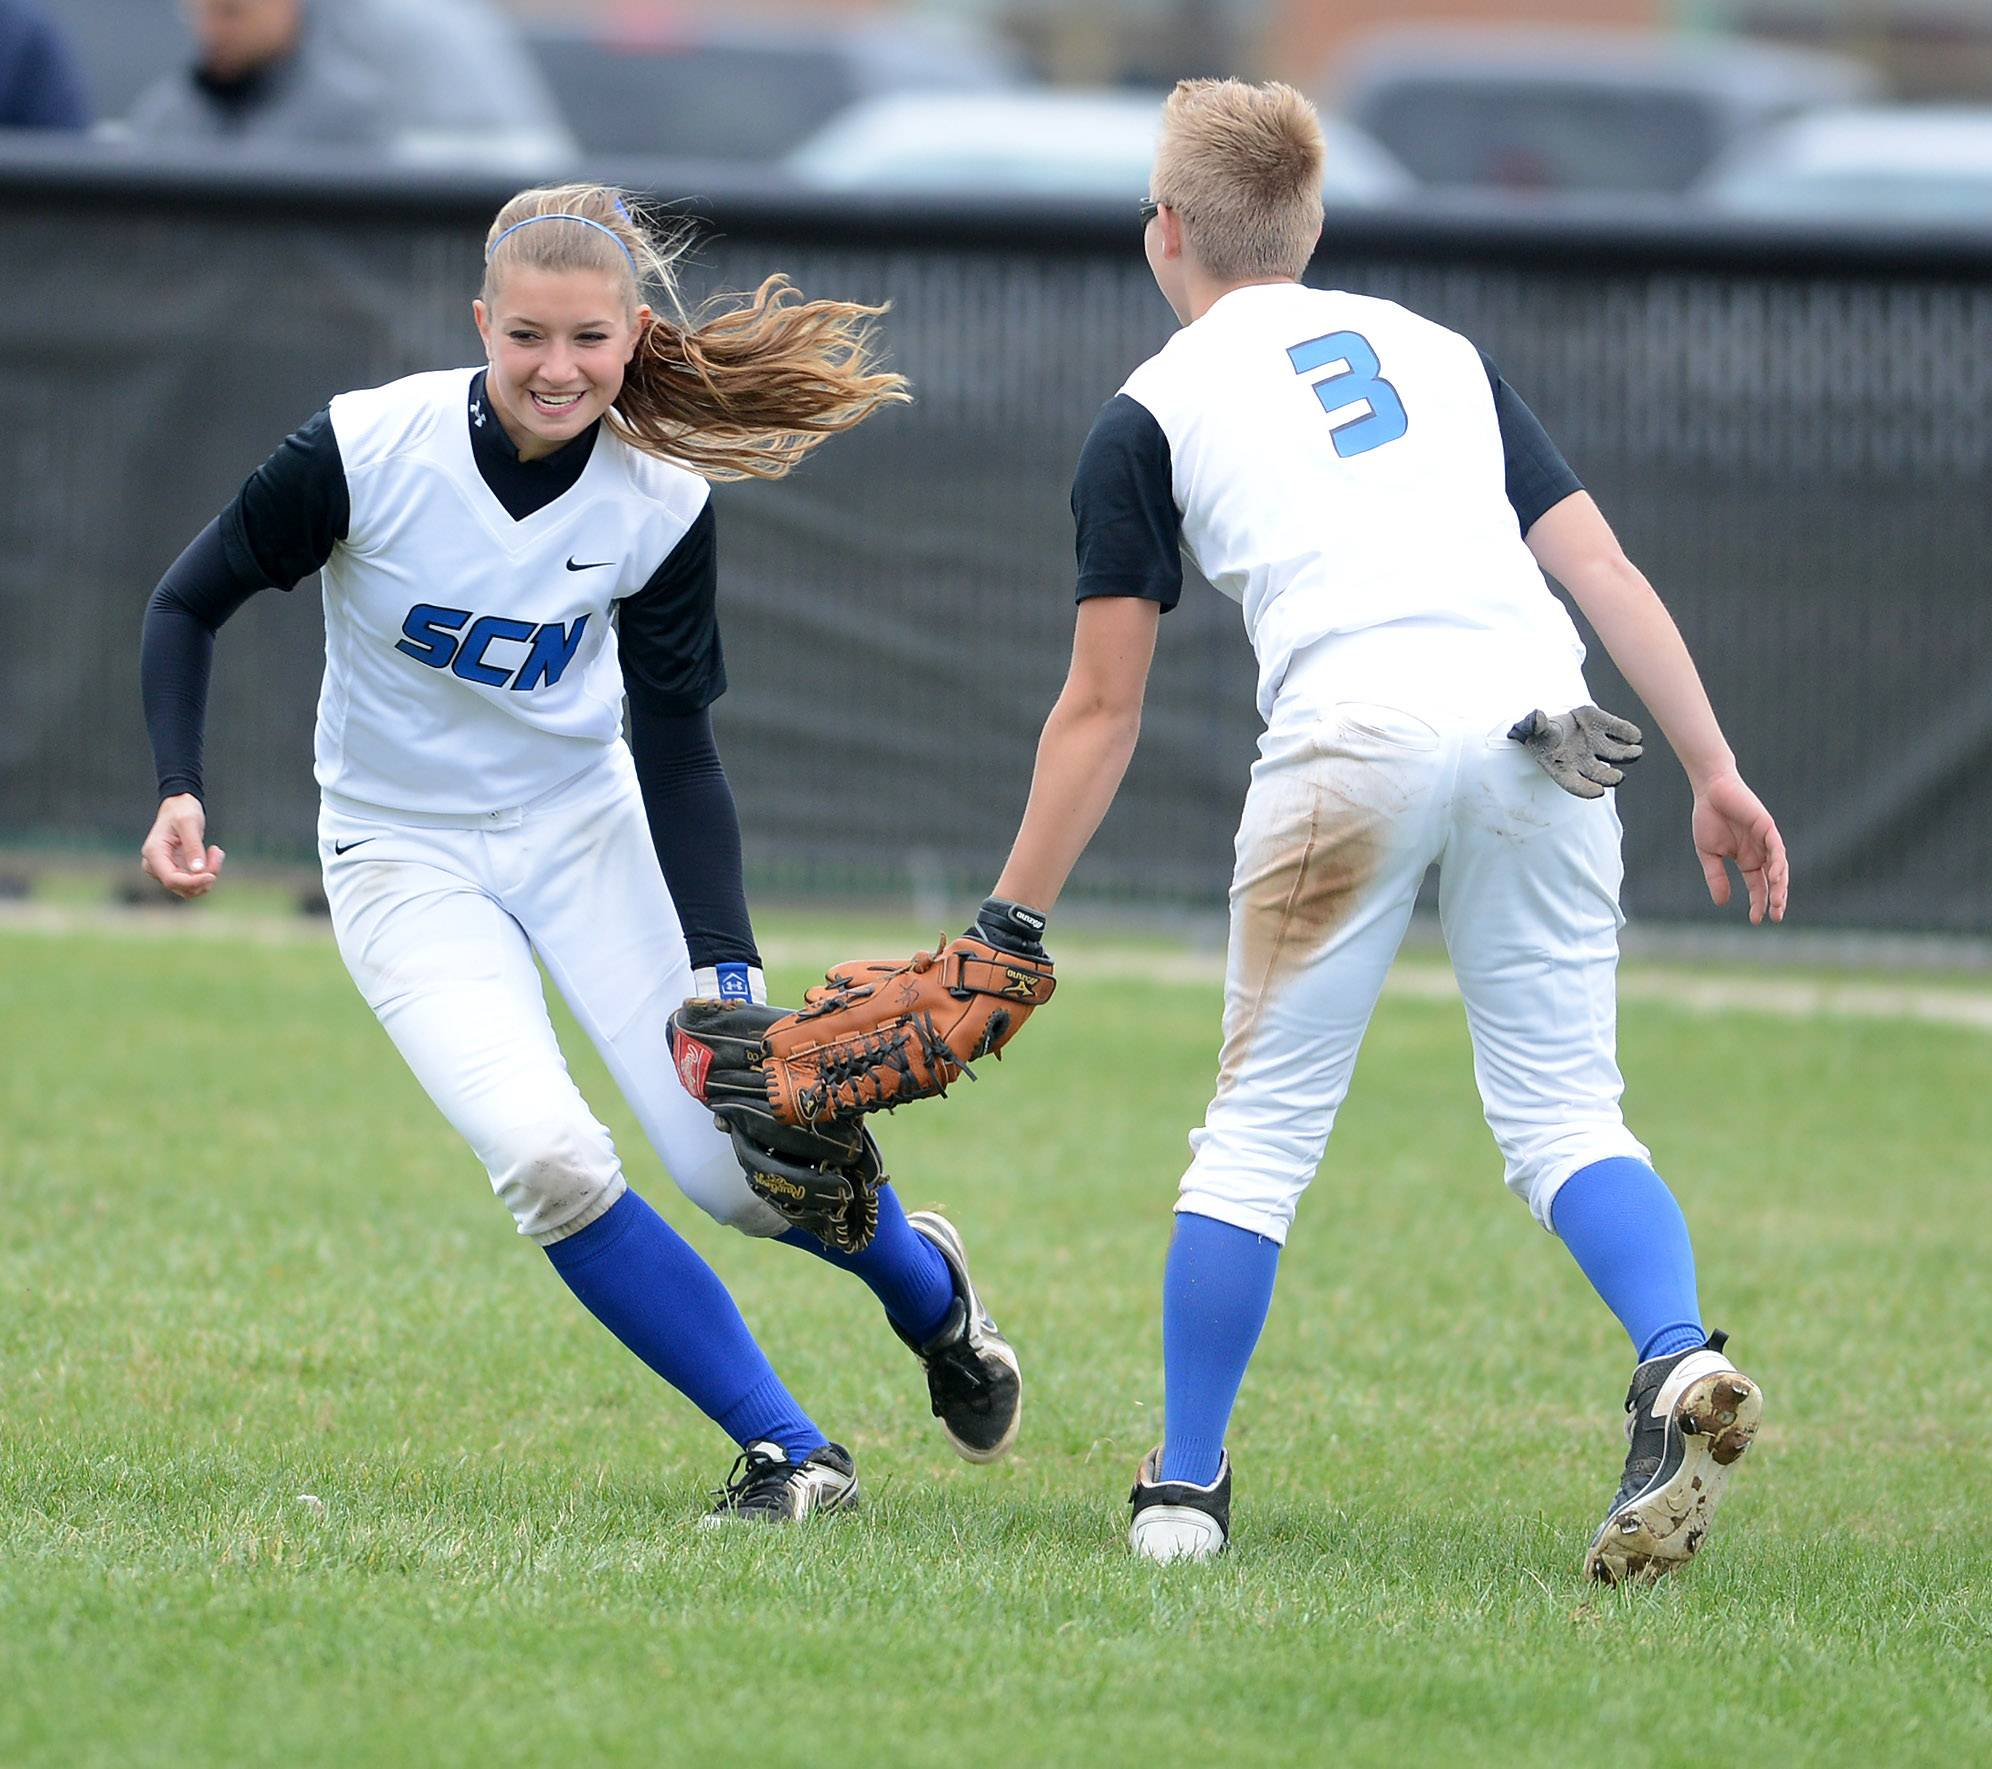 St. Charles North's Delaney Olinger, left, gives a low five to teammate Andrea Beal after Beal made a big catch during Tuesday's game in St. Charles.